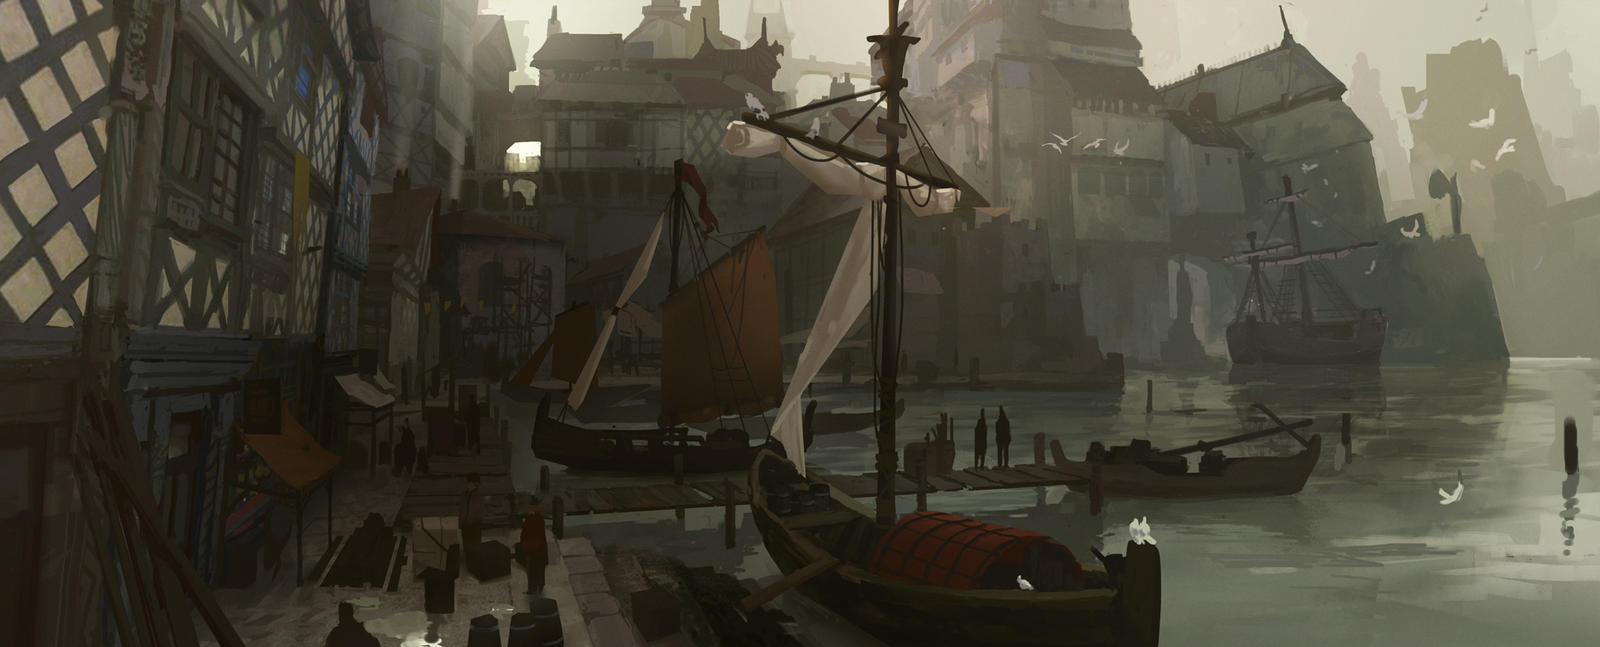 Medieval Port, by Kurobot